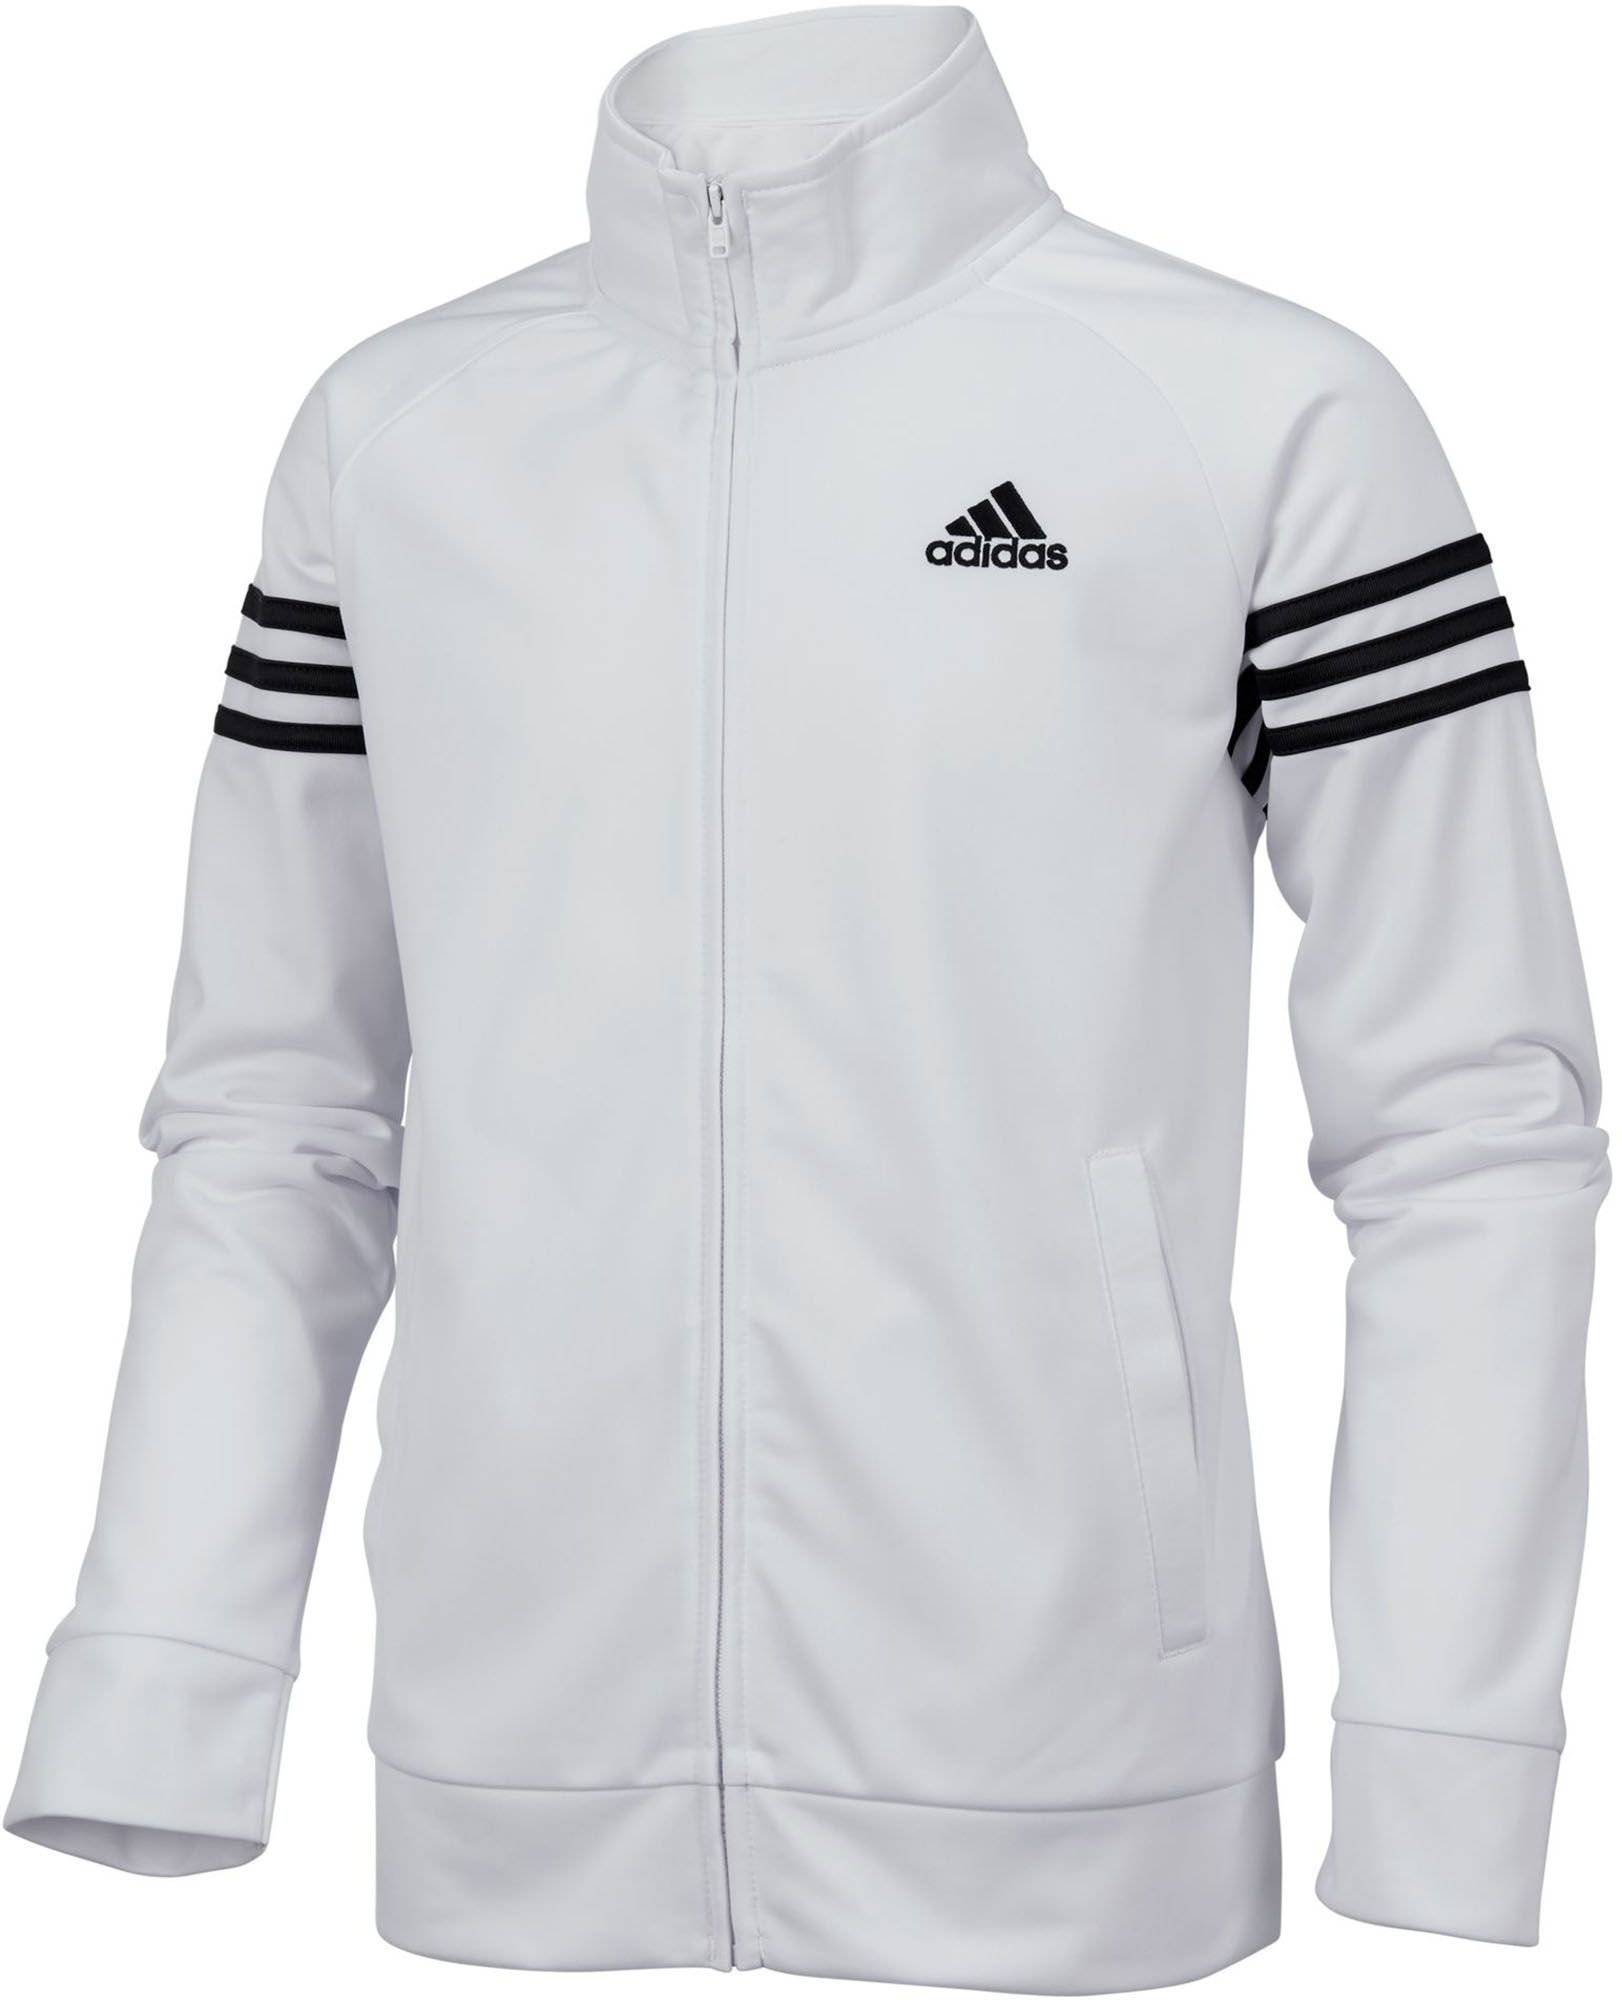 adidas Boys' Event Jacket | Products in 2019 | Jackets